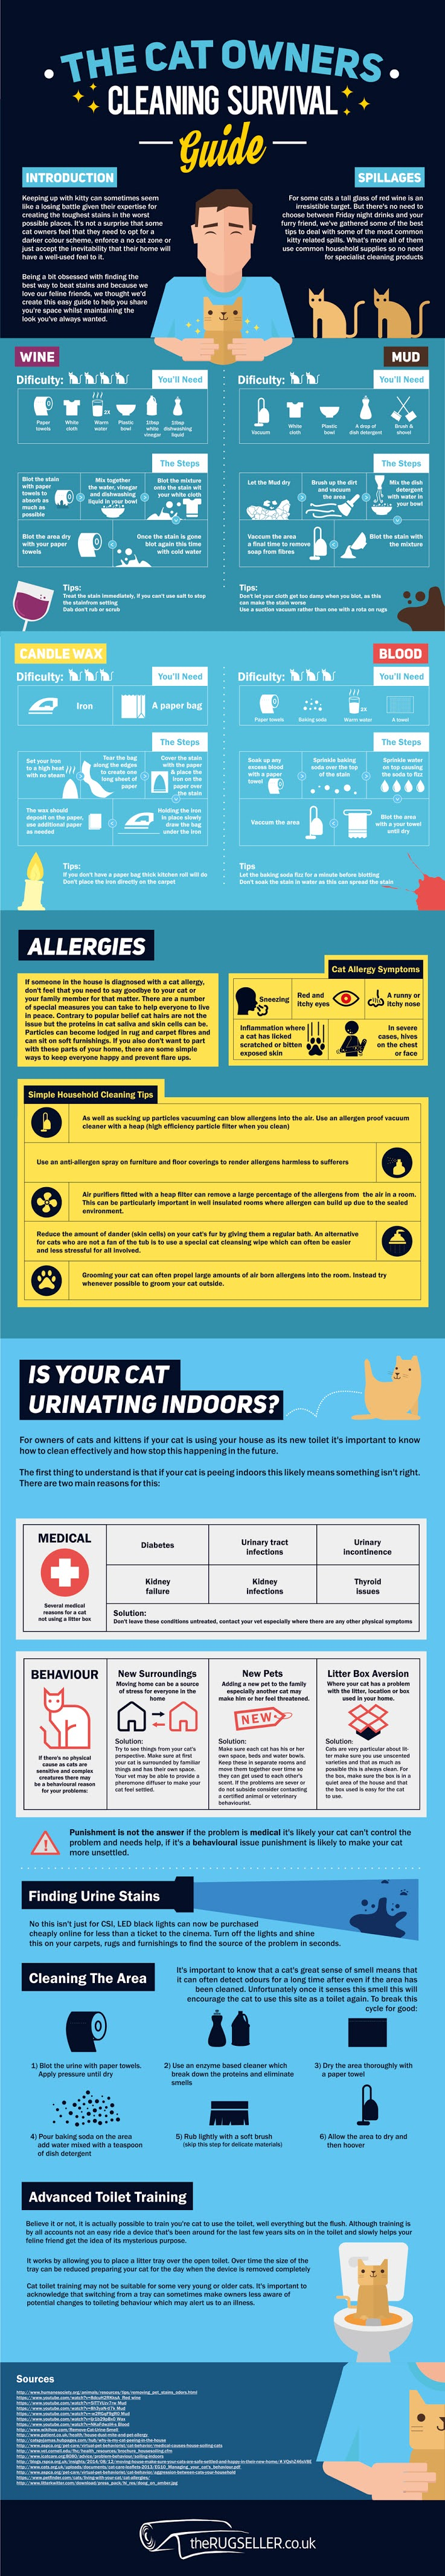 The Cat Owners Cleaning Survival Guide #infographic